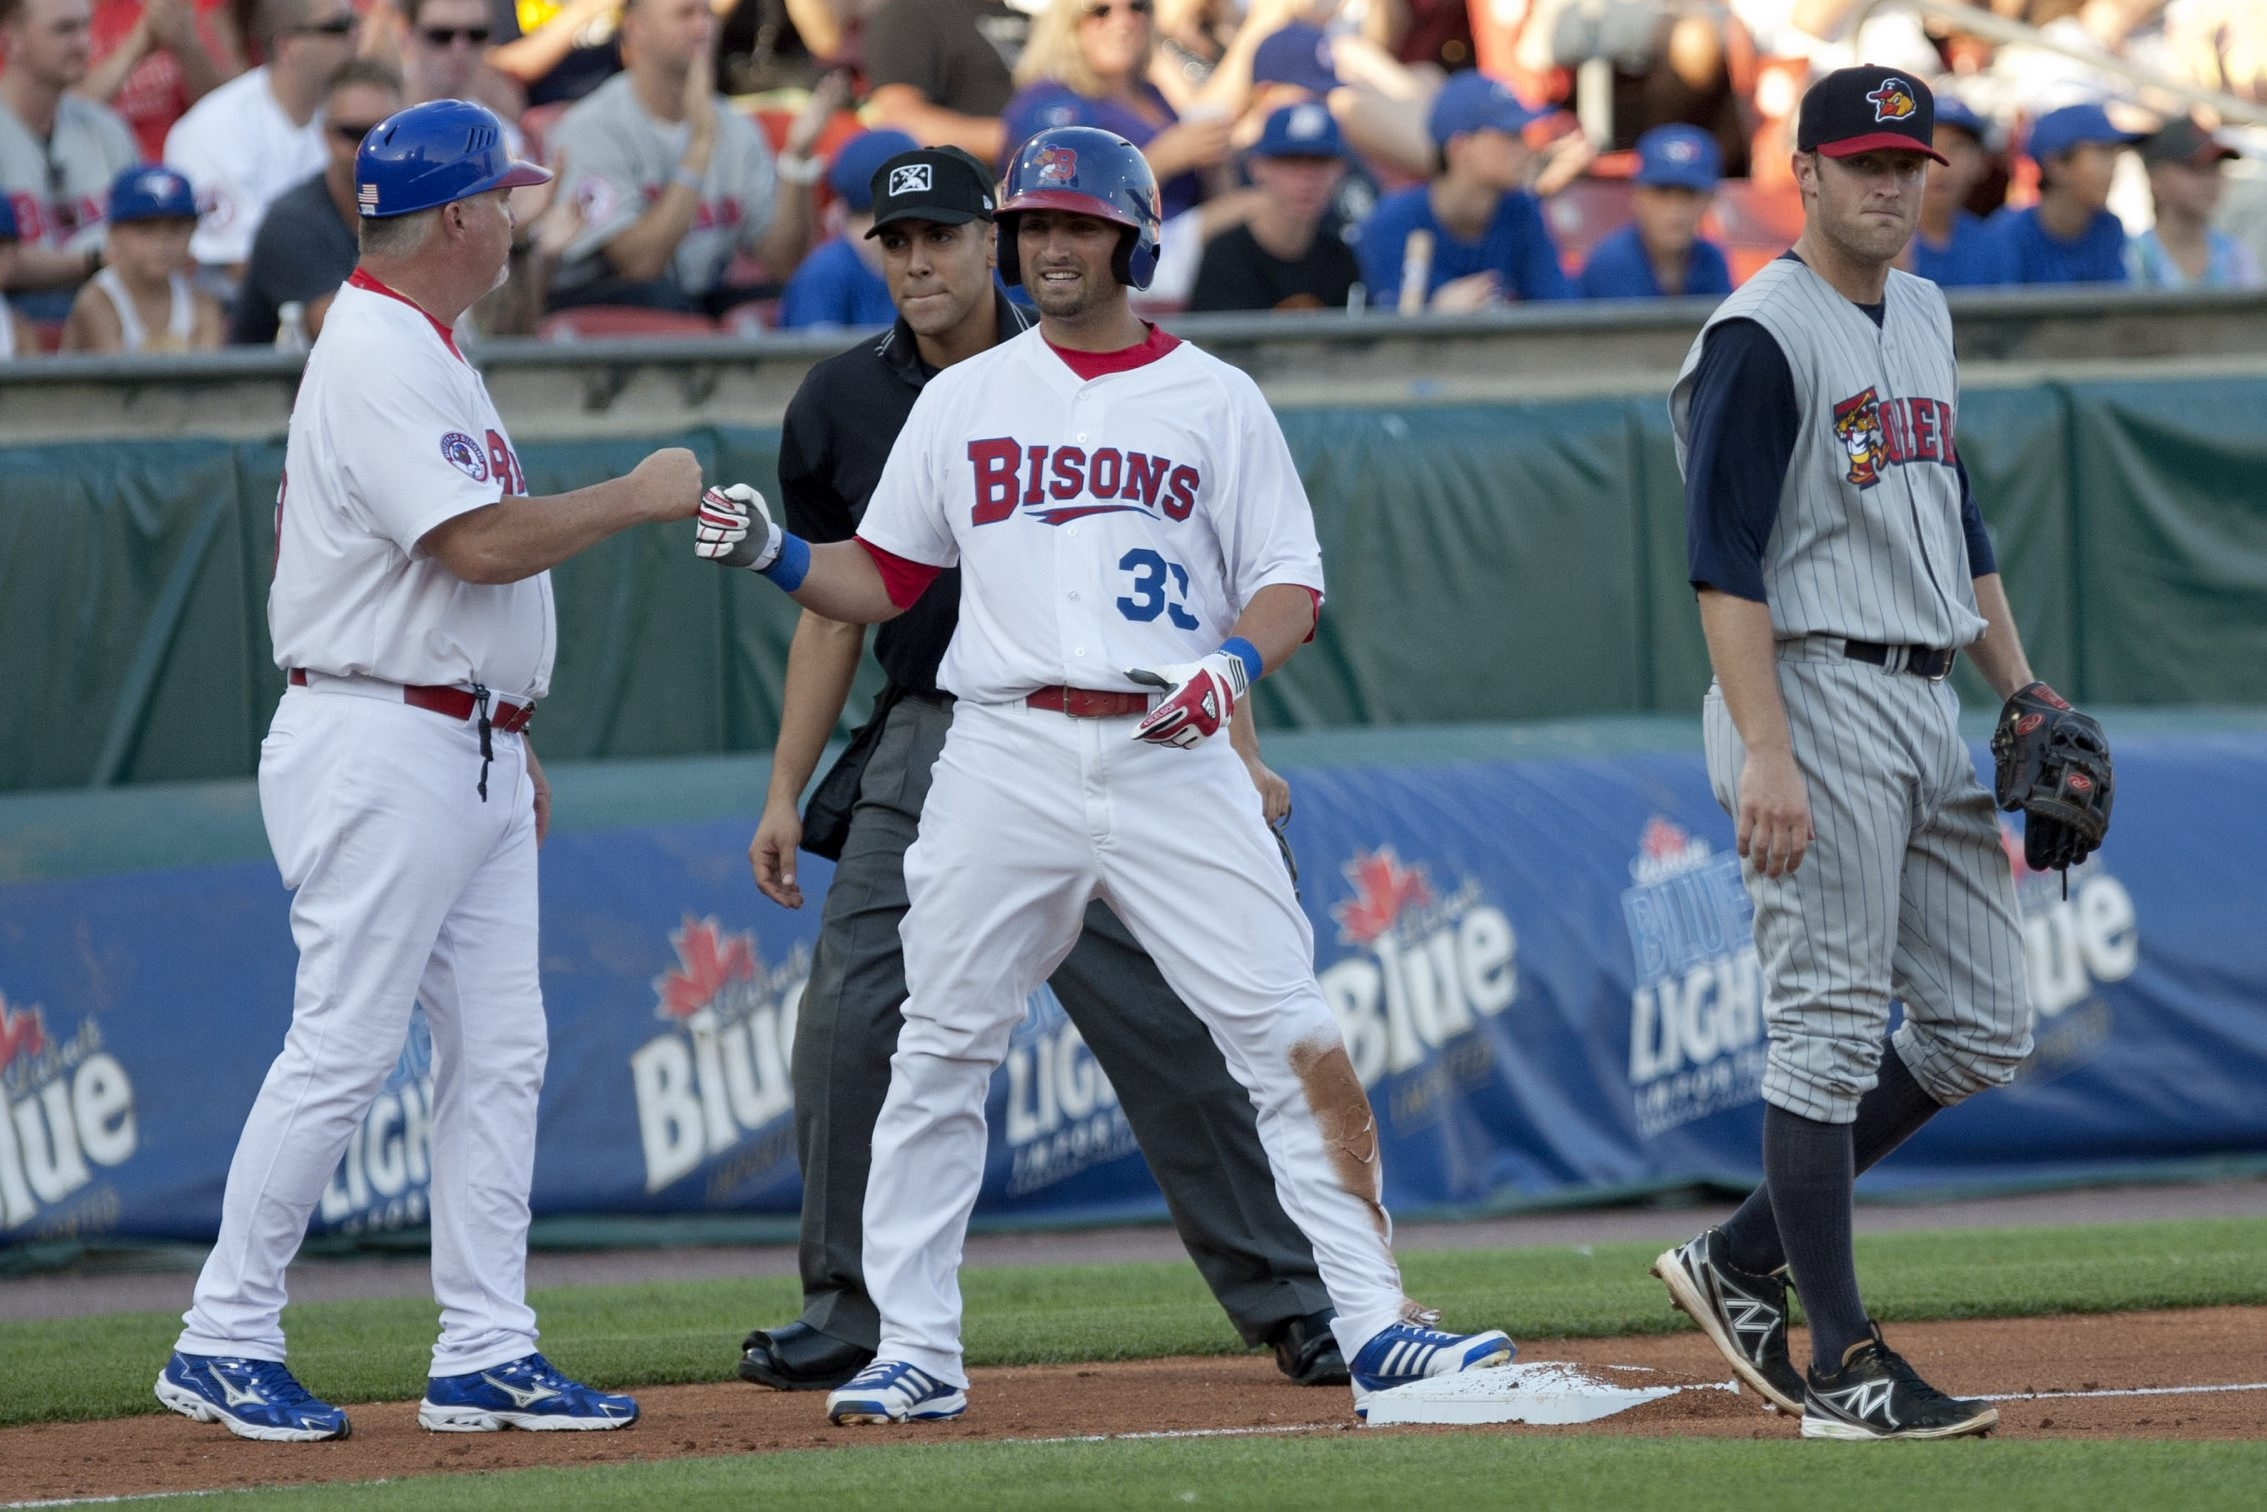 Kevin Pillar is congratulated by Bisons manager Marty Brown after hitting a triple against Toledo on Thursday.